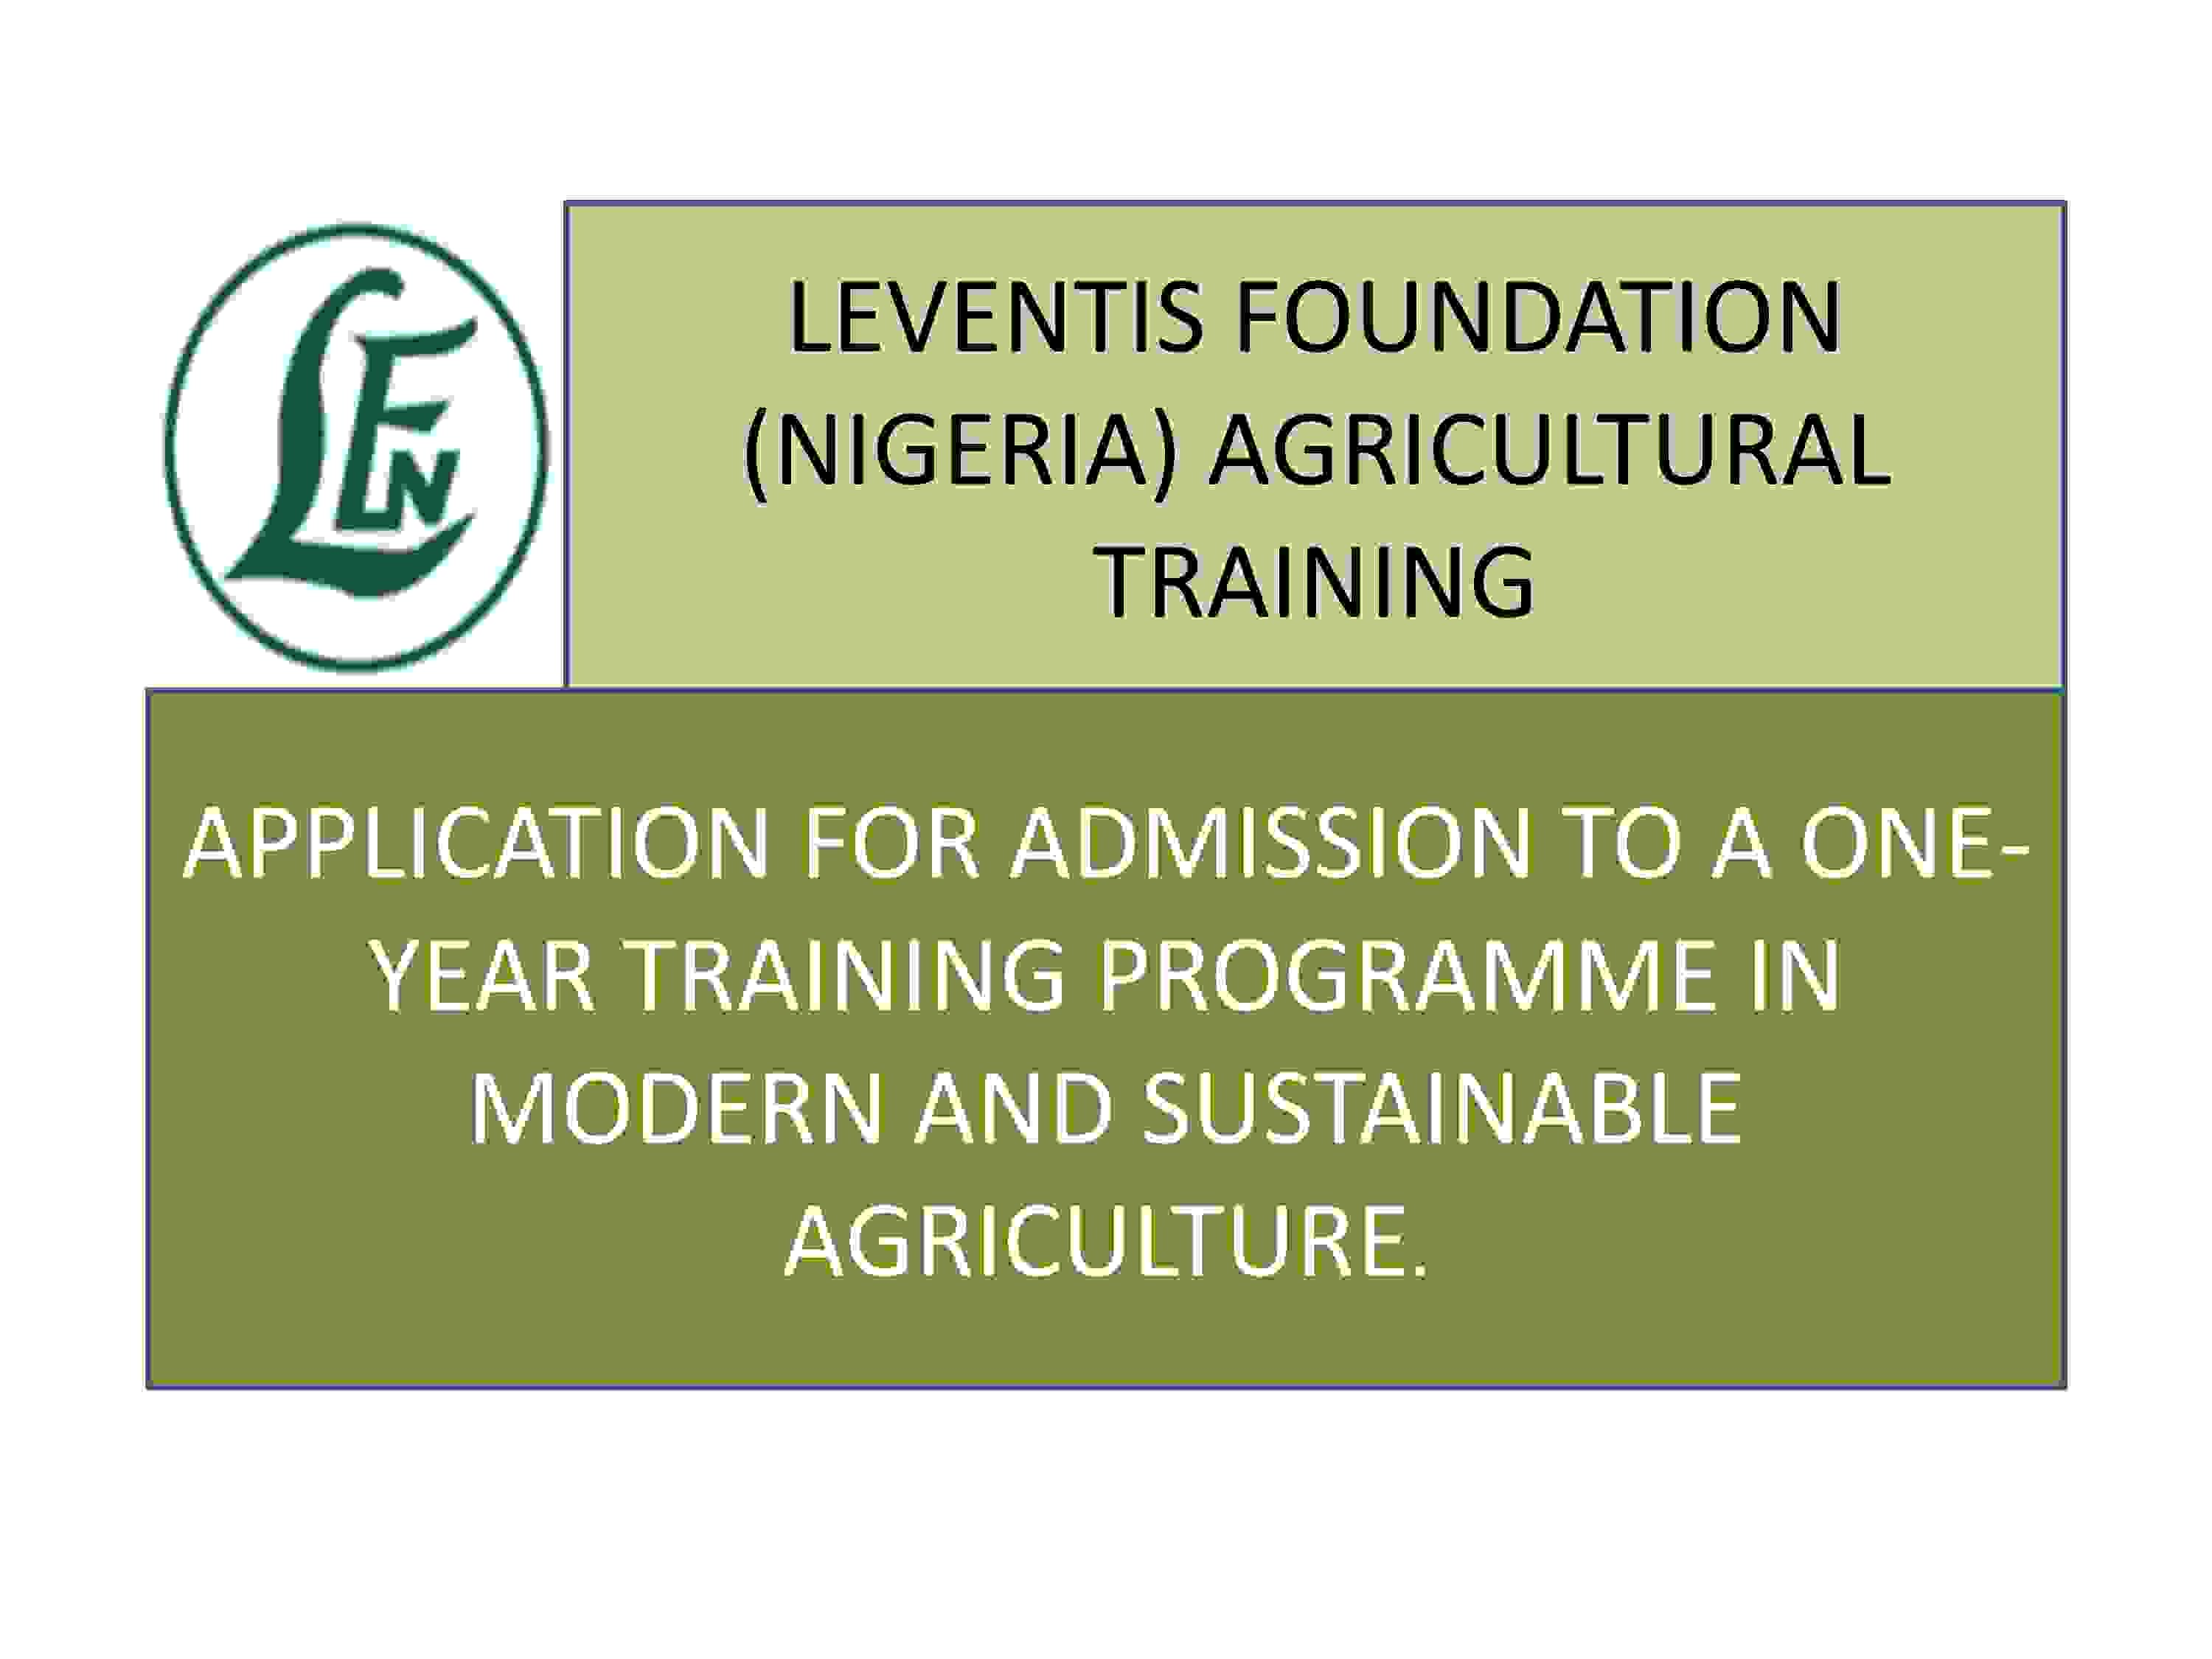 Leventis Foundation One-year Youth Training Programme in Modern and